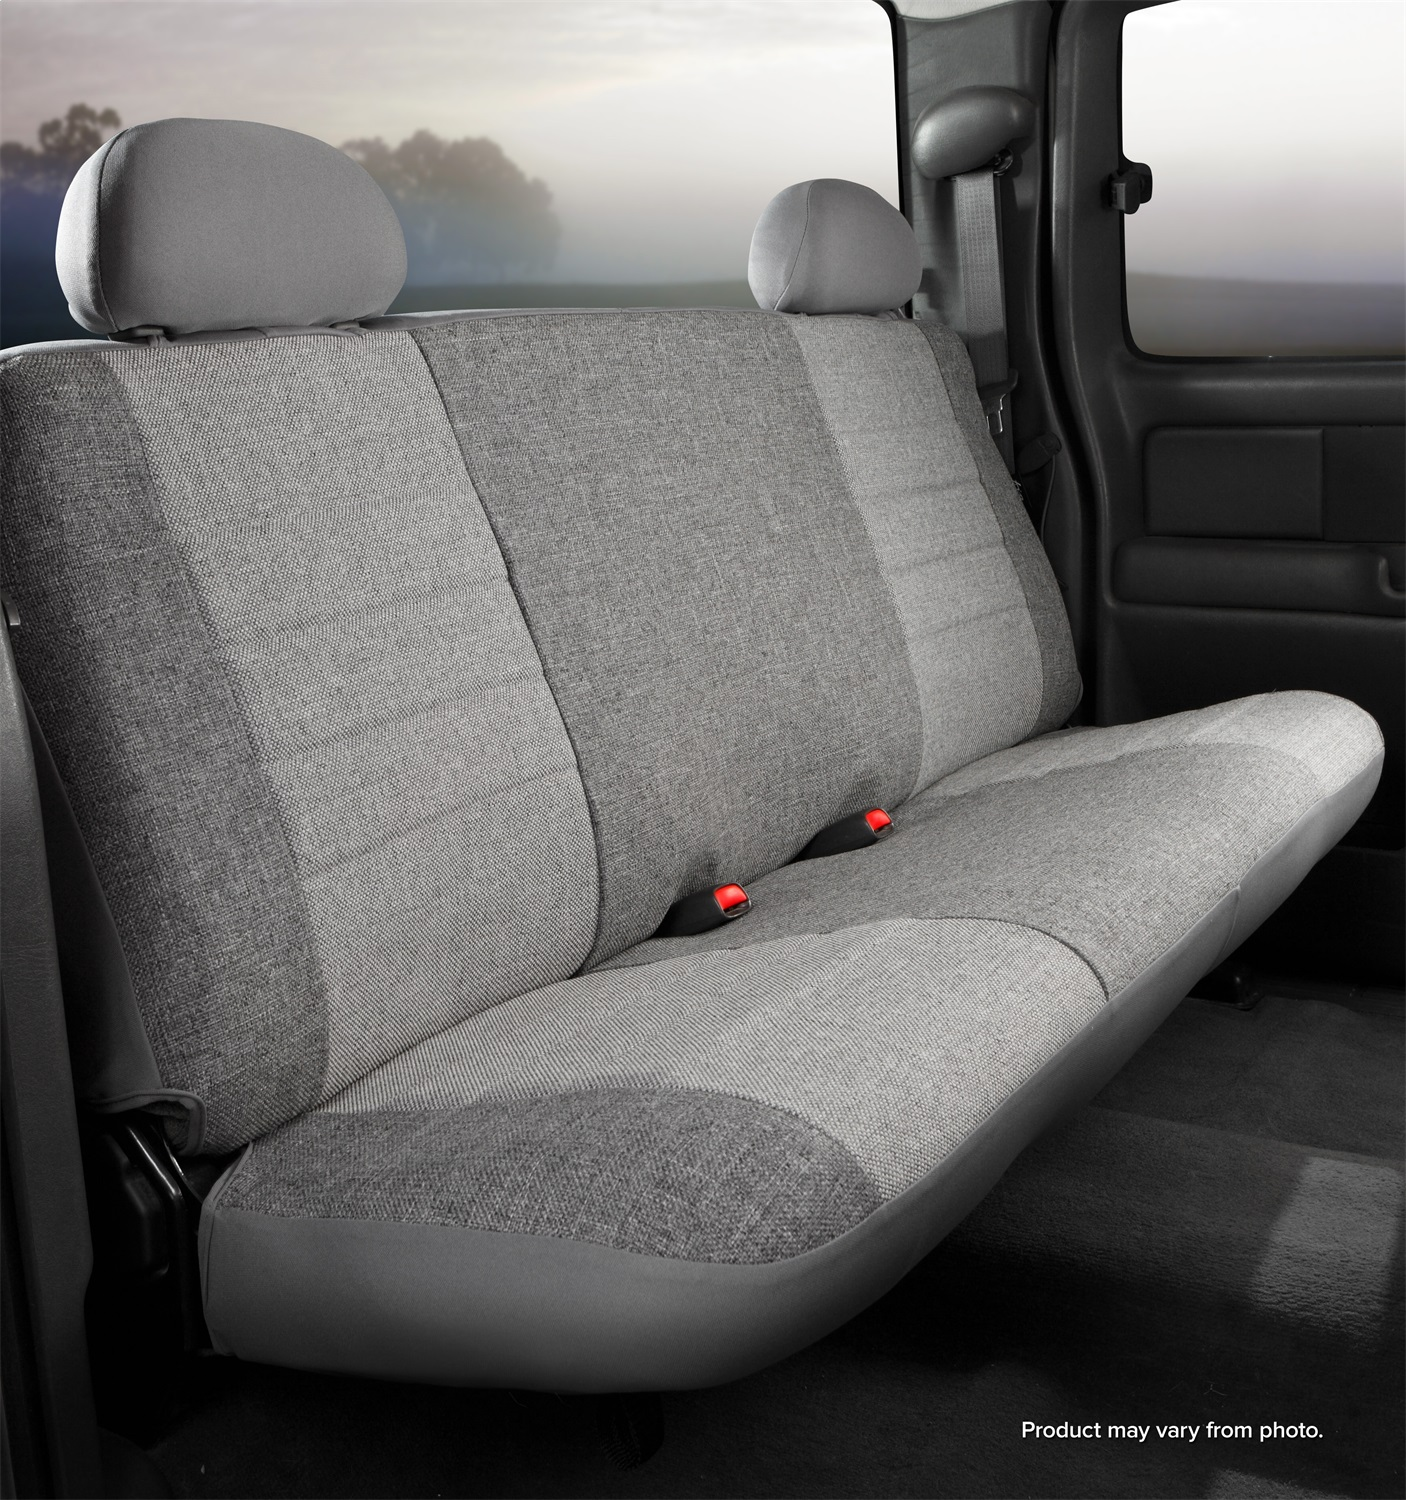 Fia OE37-7GRAY Oe Custom Seat Cover  Tweed  Gray  Front  Bench Seat at Sears.com